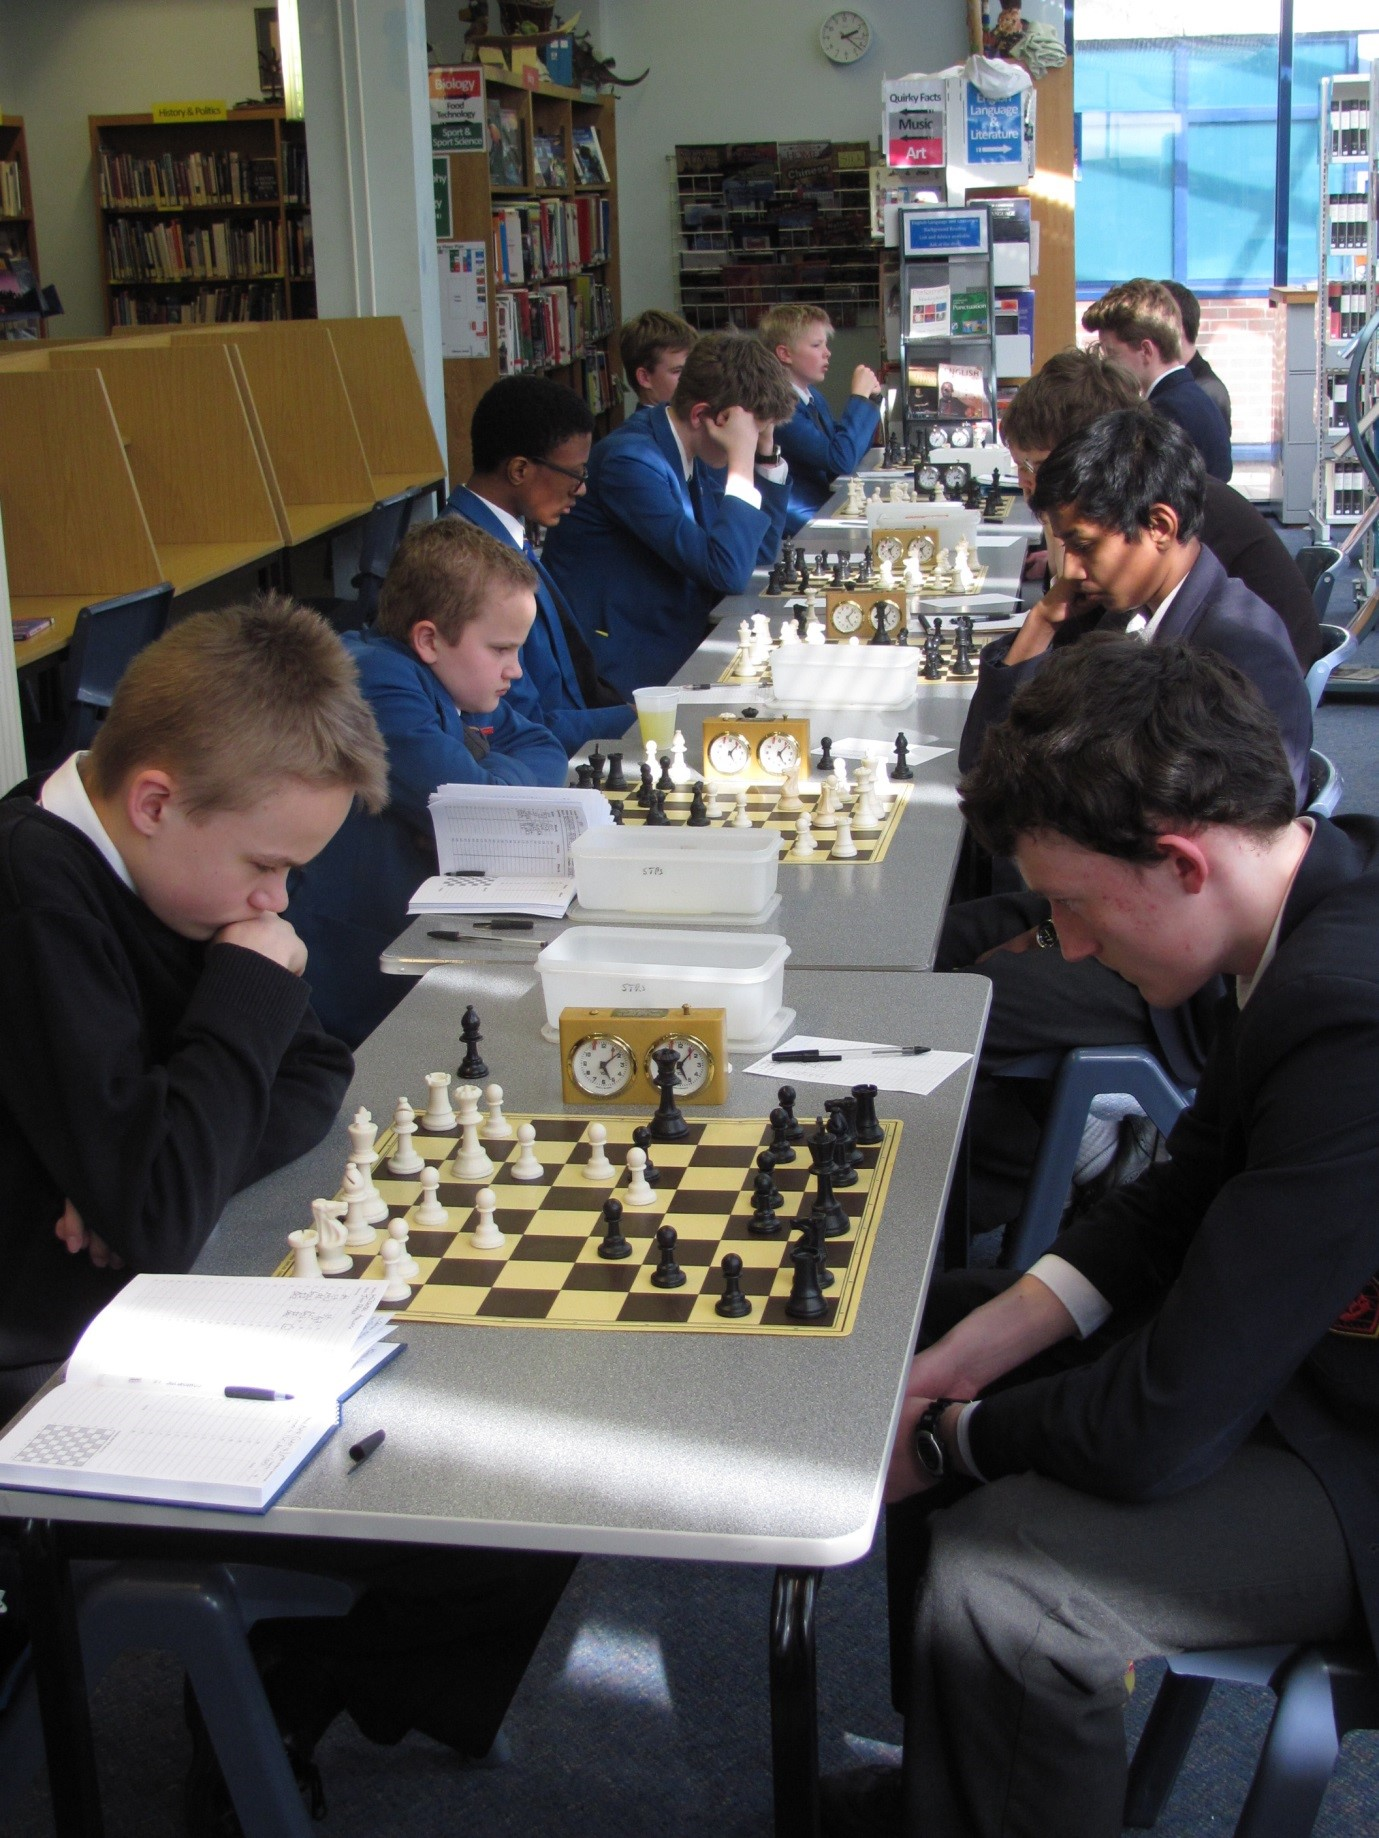 Photo 1 - Chess - So Close To A Great Success